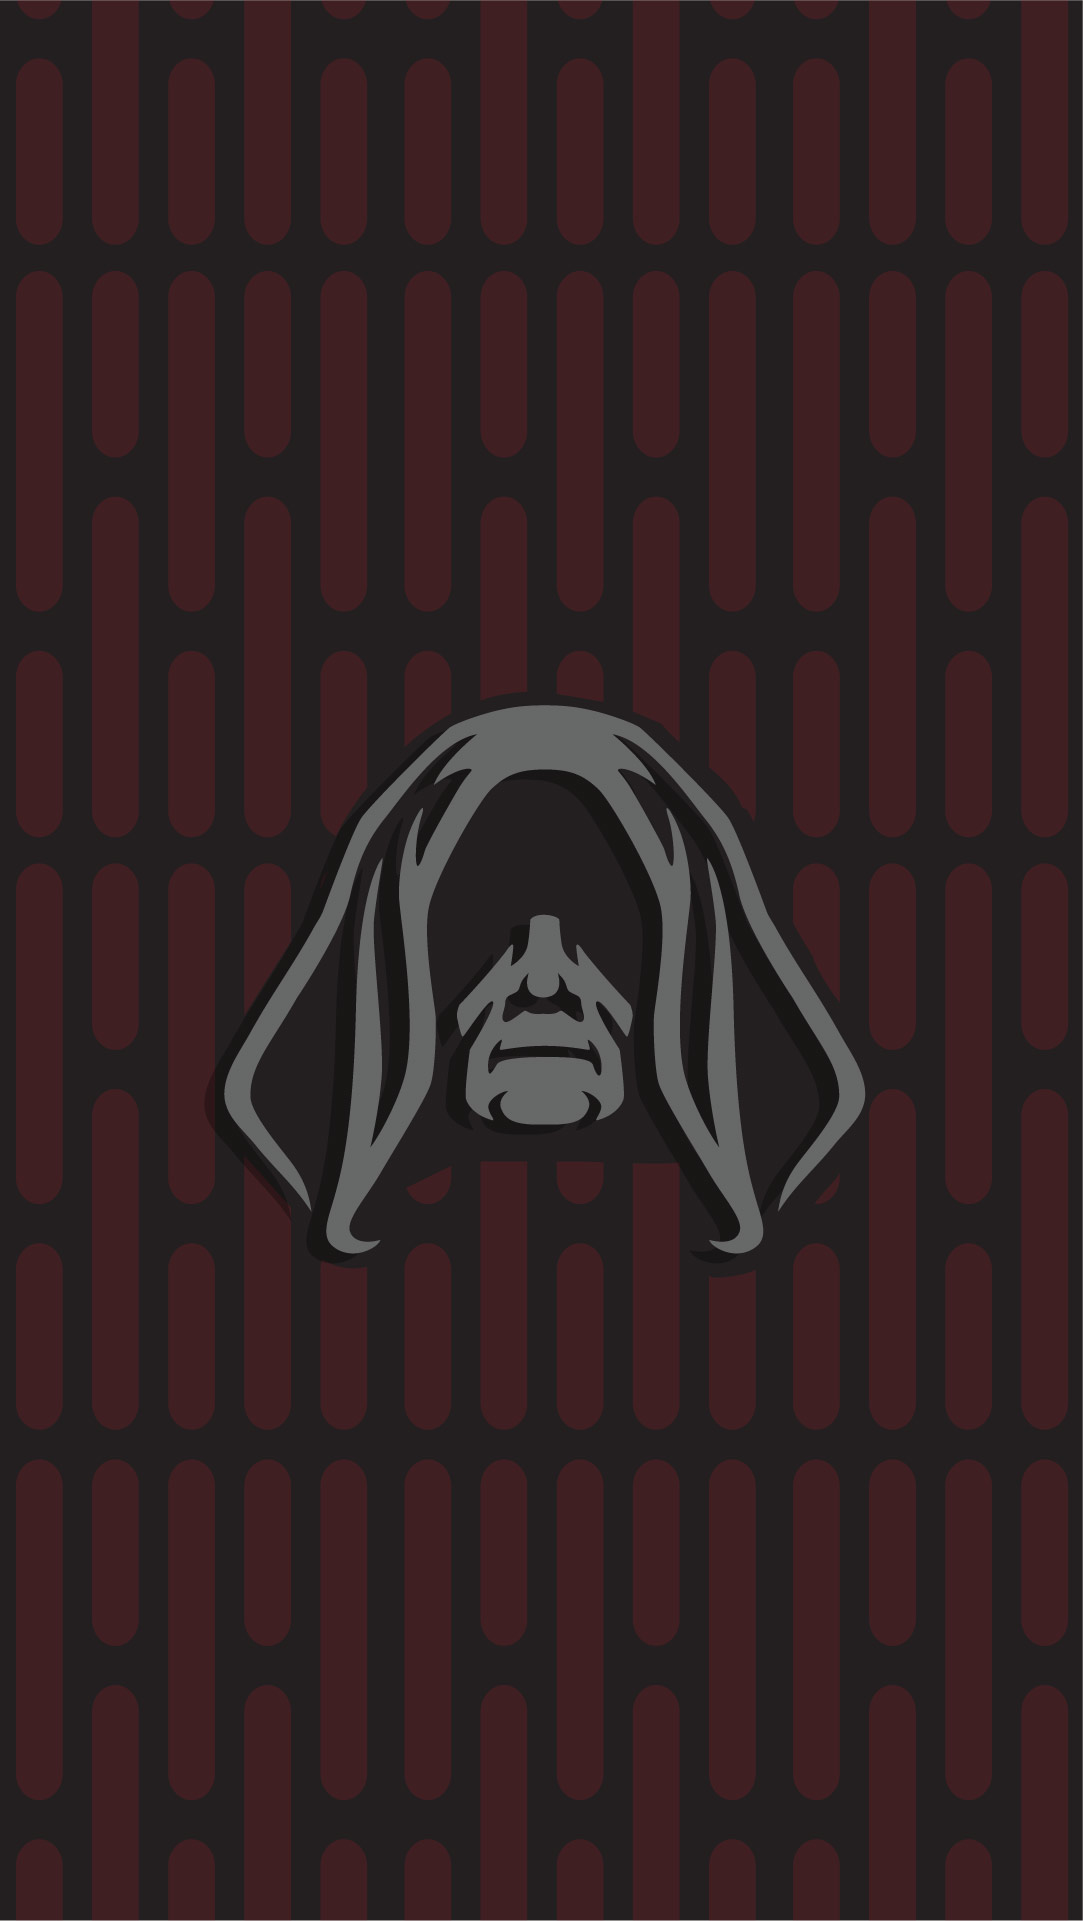 Star Wars Wallpapers For Mobile Devices Starwarscom